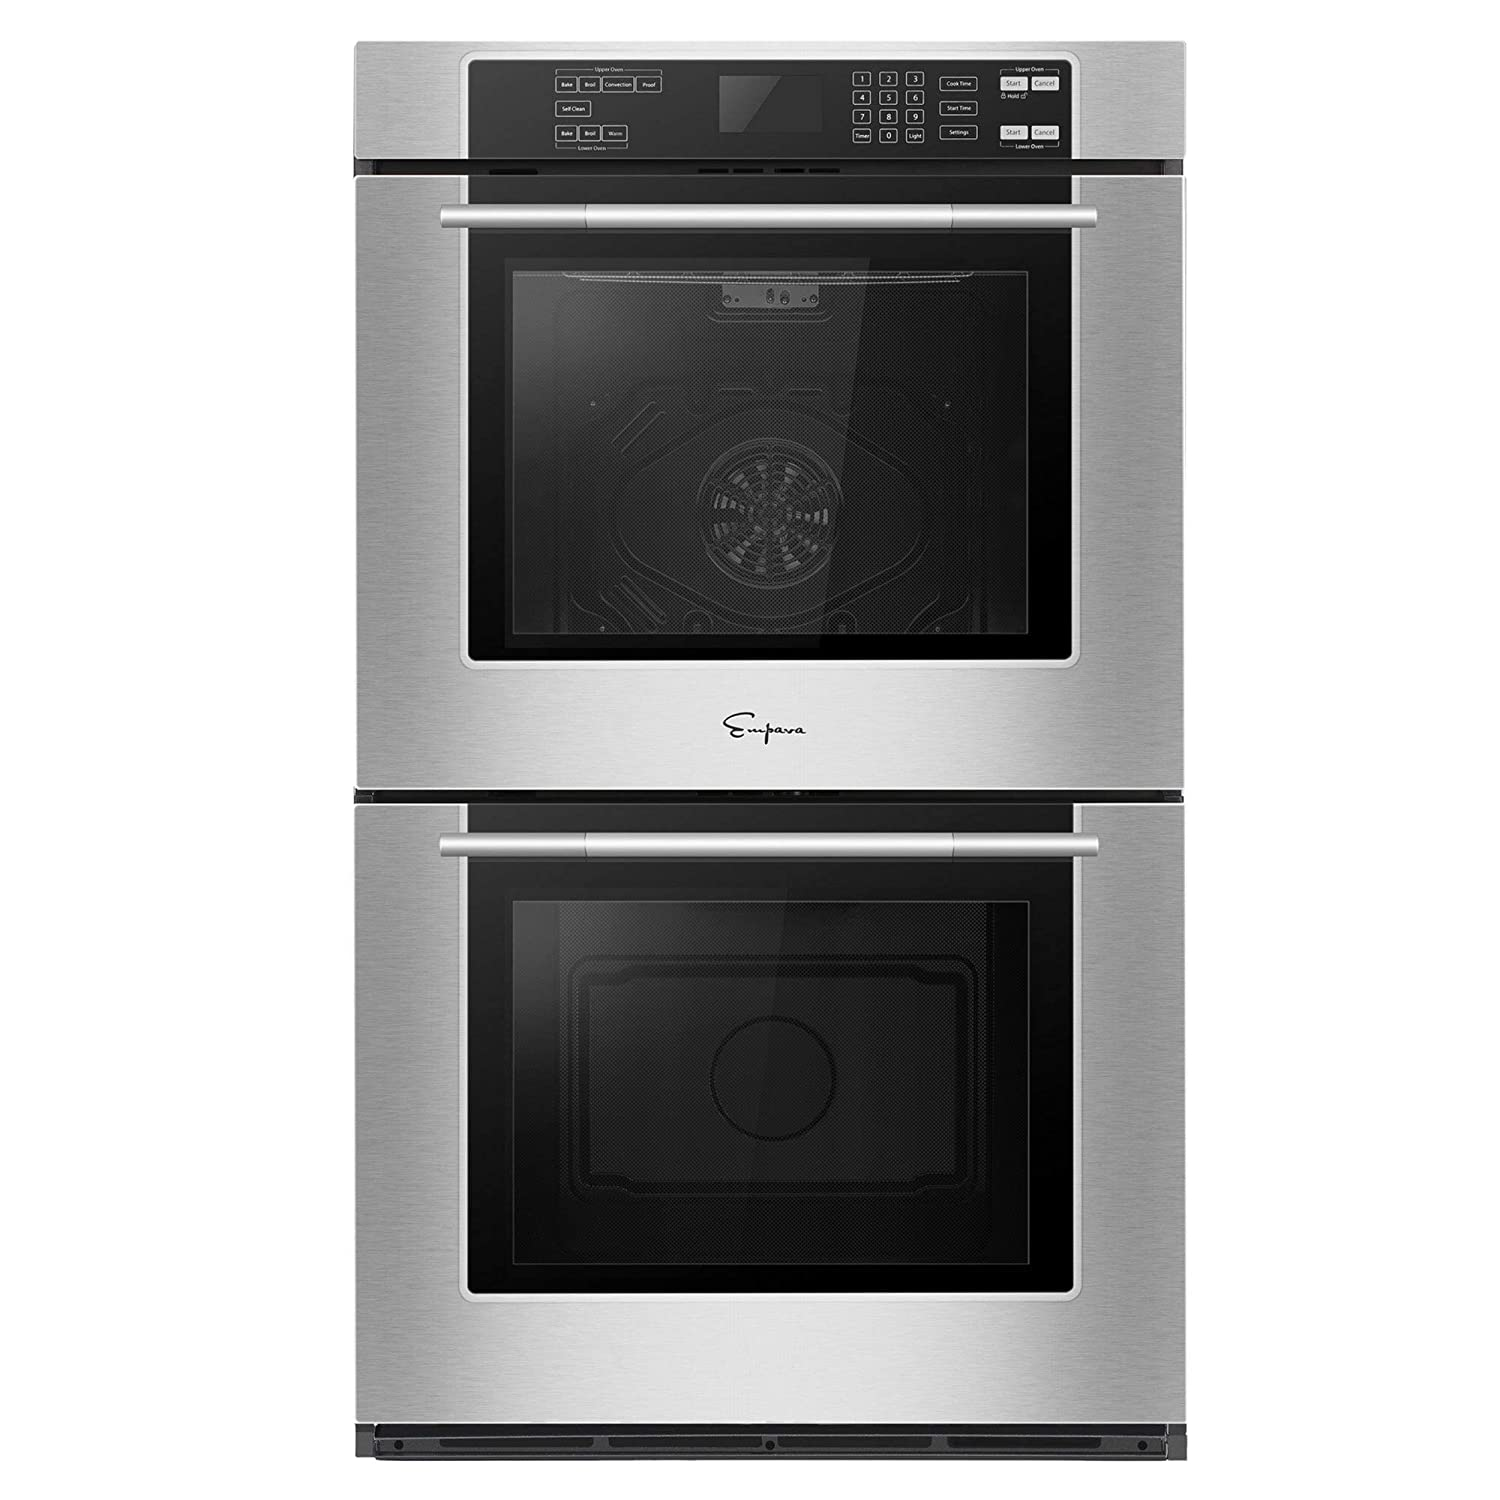 Empava 30 in 10 cu. ft. Total Capacity Electric Double Wall 4 Oven Racks Self-cleaning Convection Fan Touch Control in Stainless Steel Black, 30 Inch